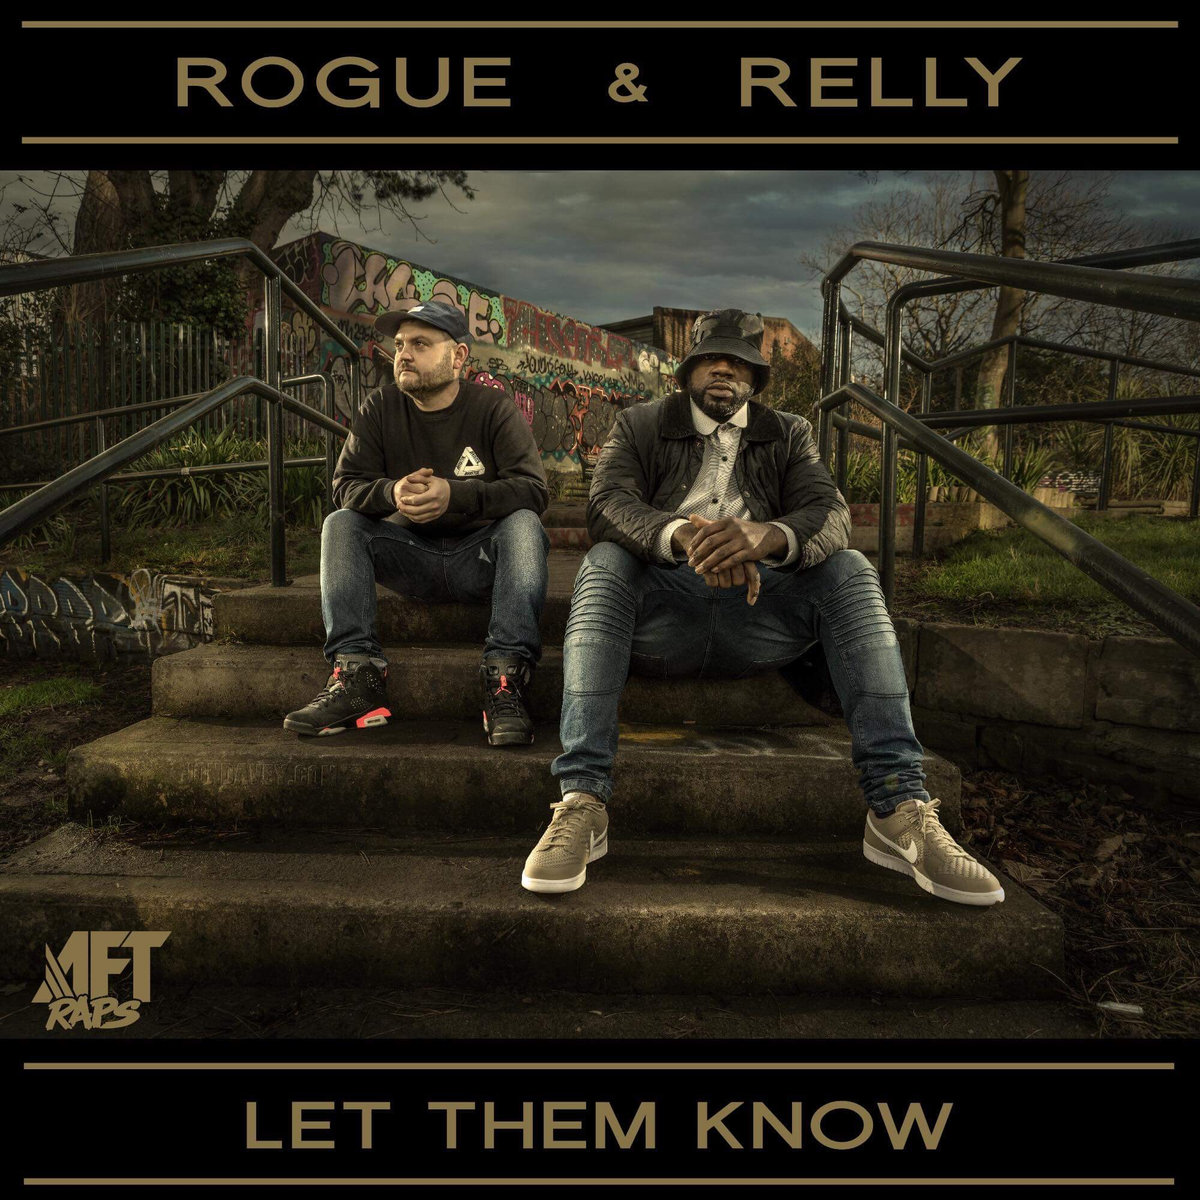 LET THEM KNOW - ROGUE & RELLY